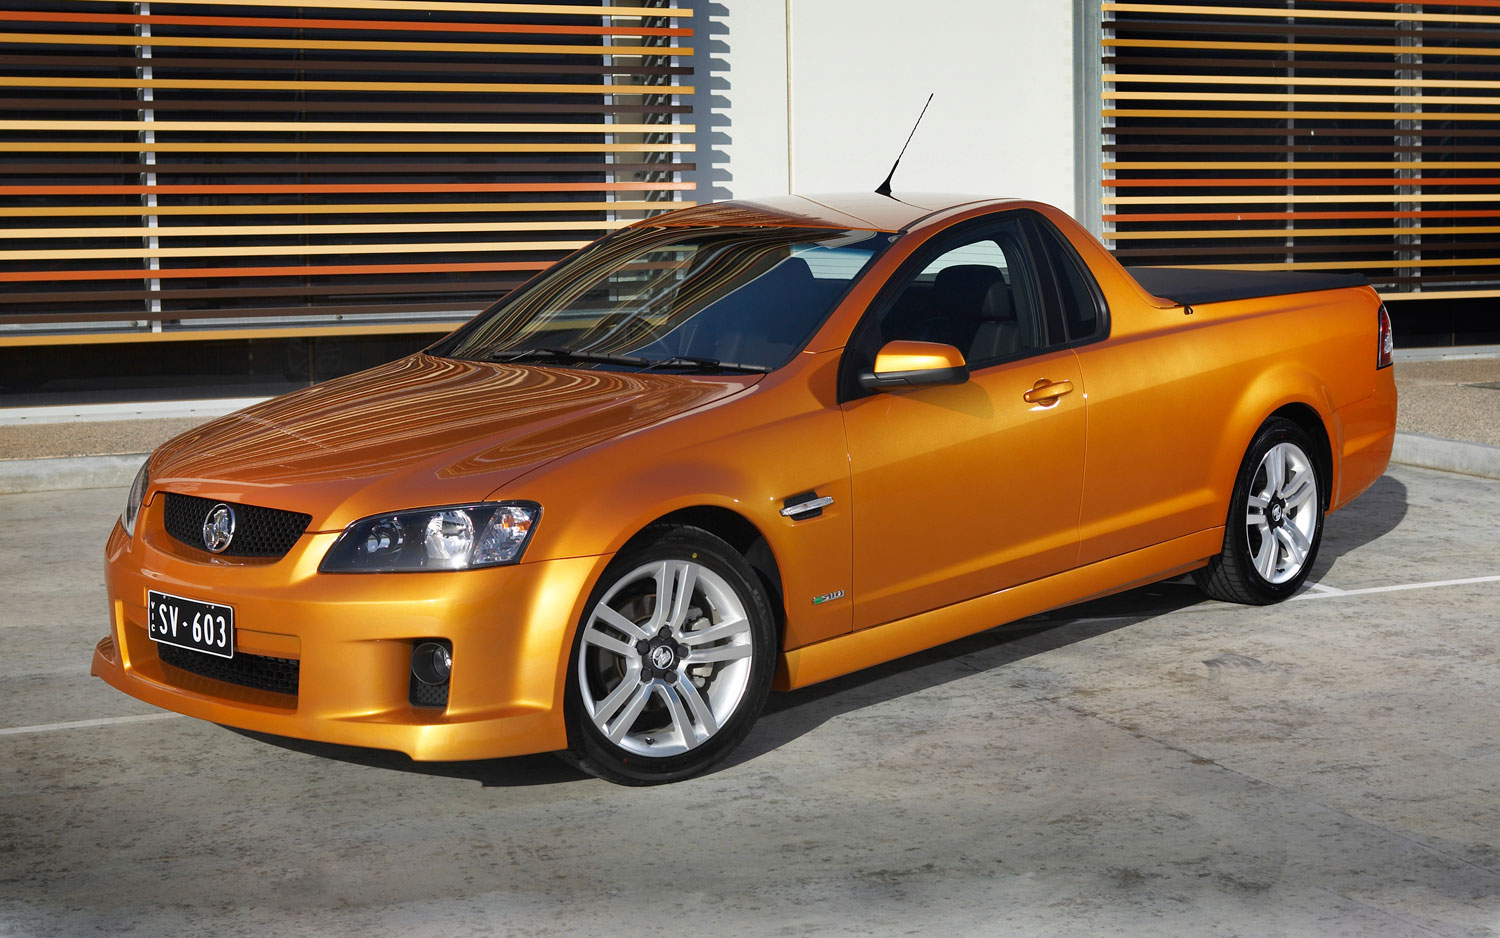 hight resolution of how many stolen v 8s trannys can fit into a holden ute 2 5 million worth